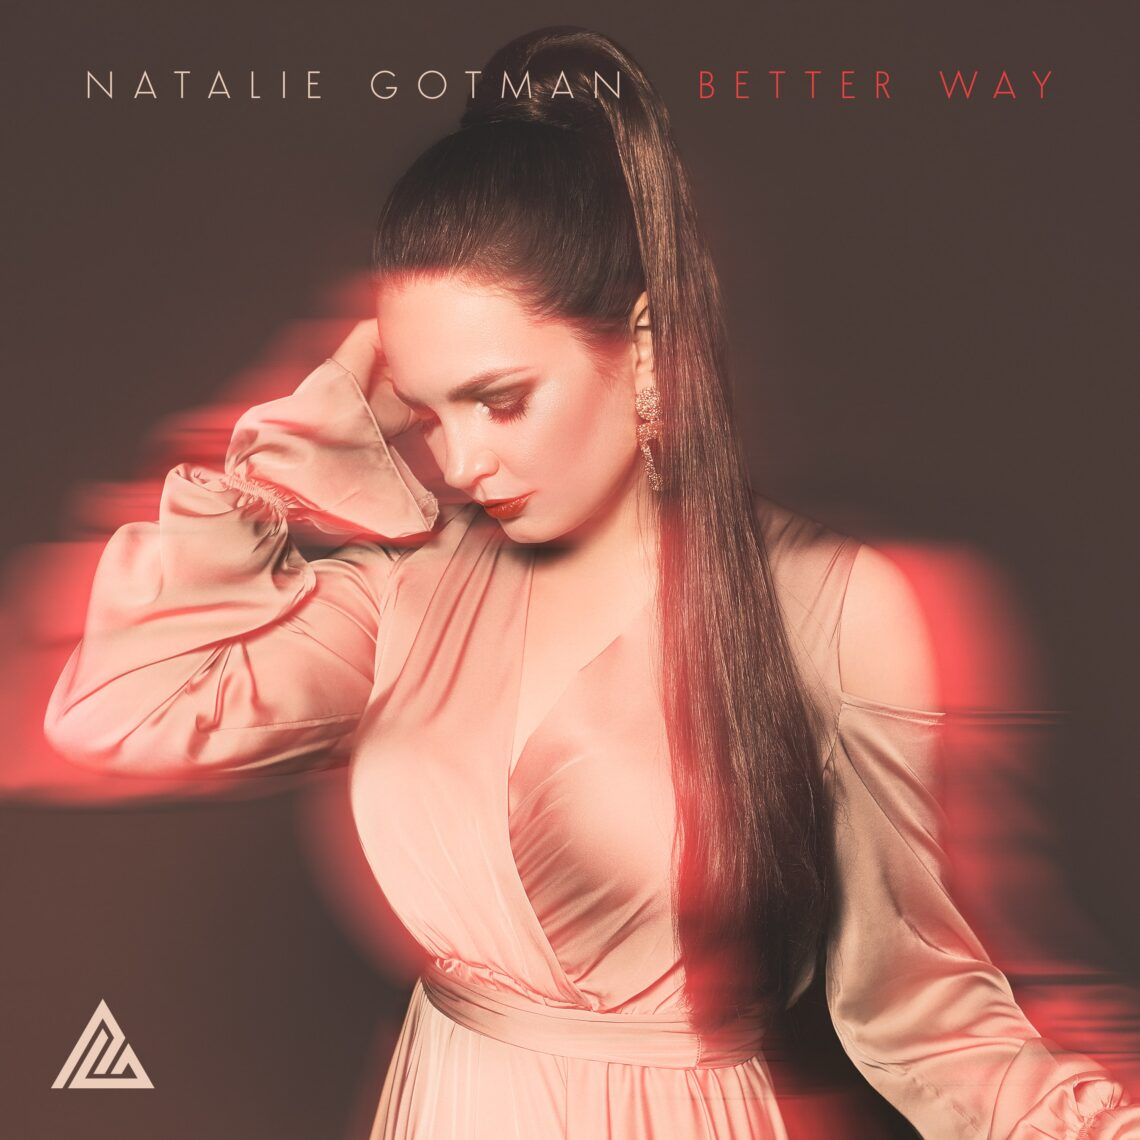 Natalie Gotman – Better Way